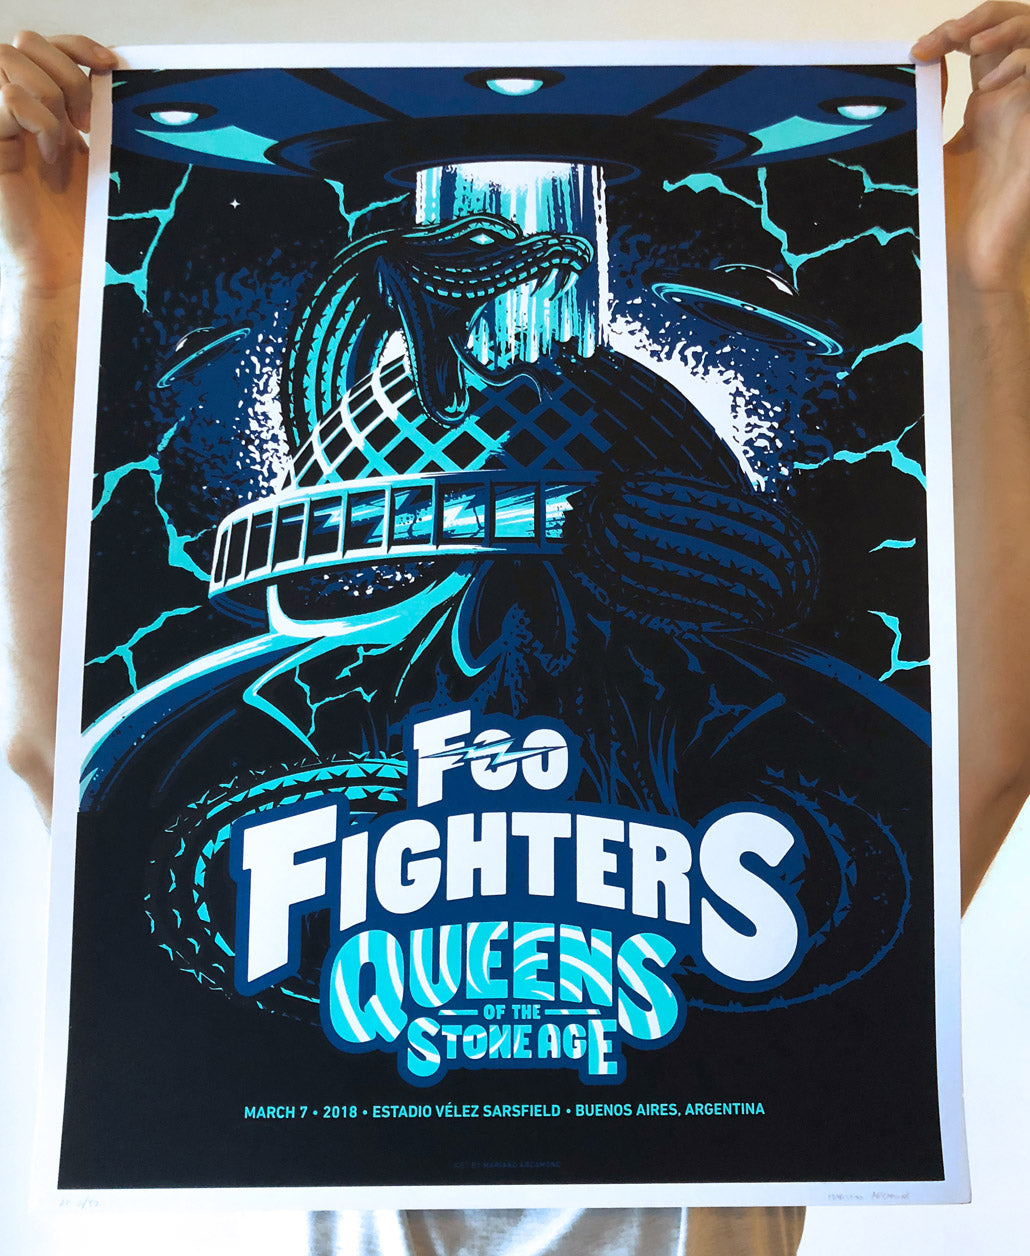 Foo Fighters & Queens of the Stone Age - March 7 th, 2018, Buenos Aires , Argentina